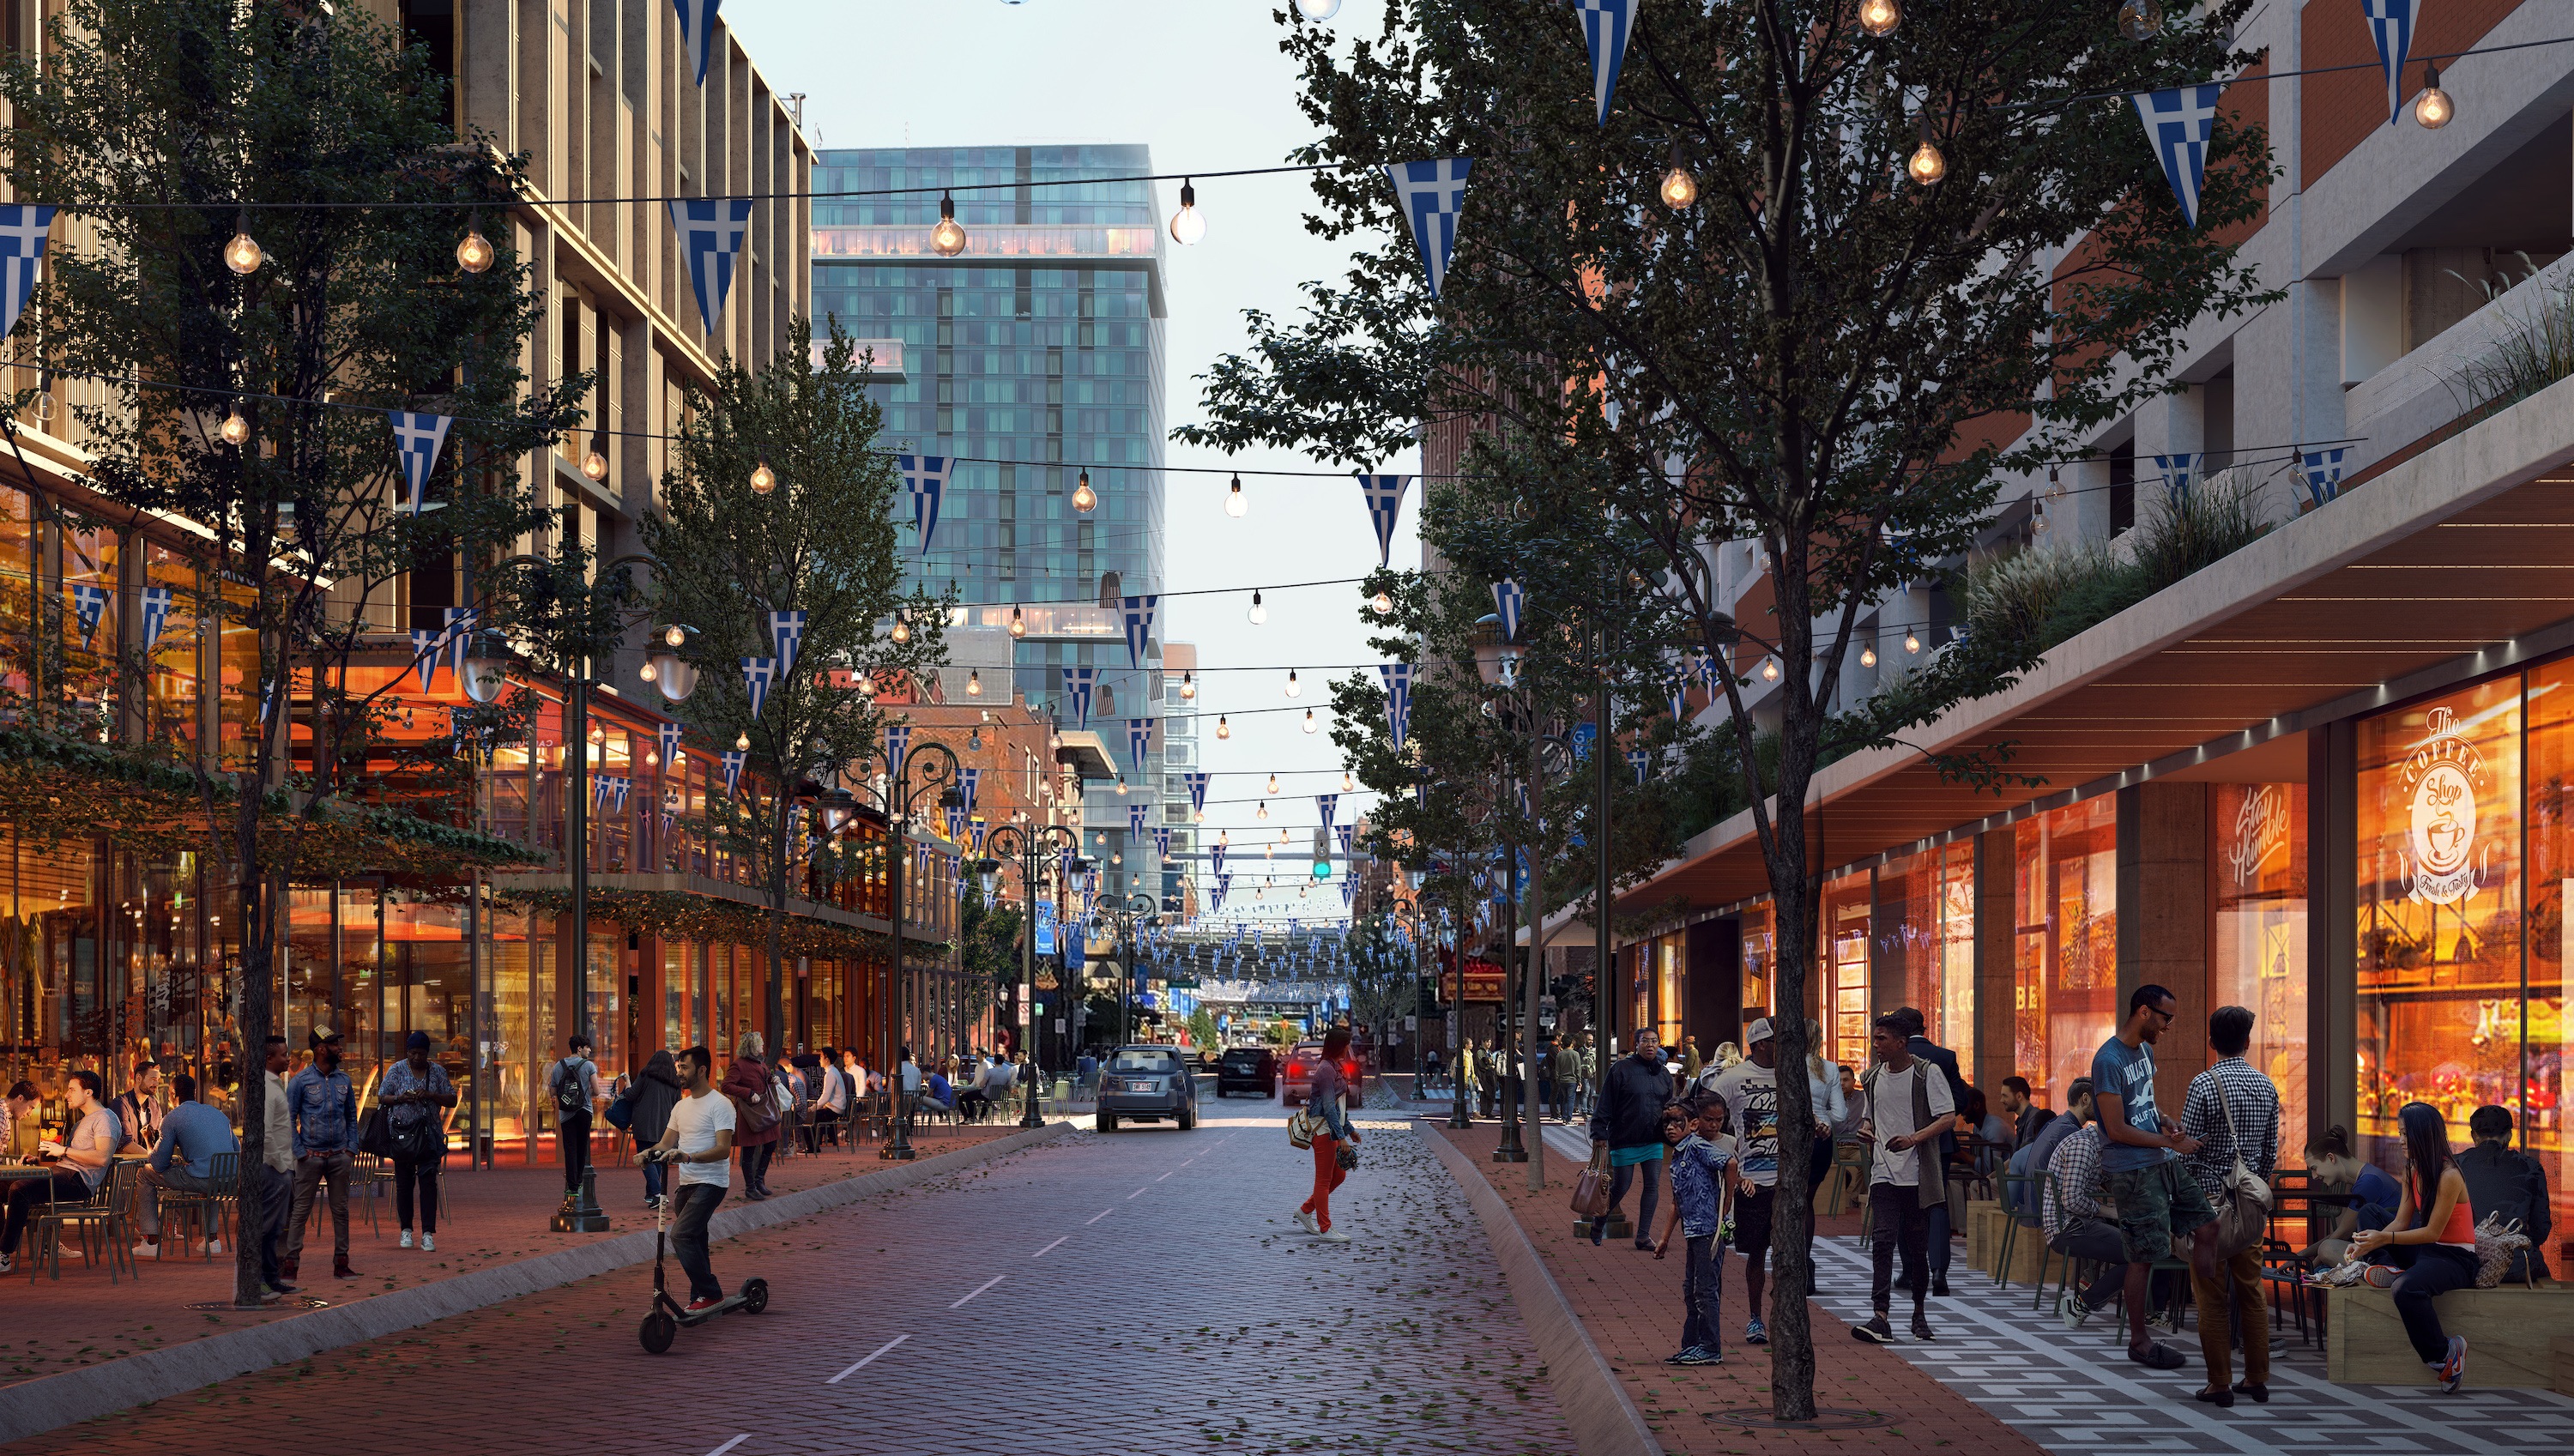 Greektown seeks to modernize with plan that includes more mixed-use, public space